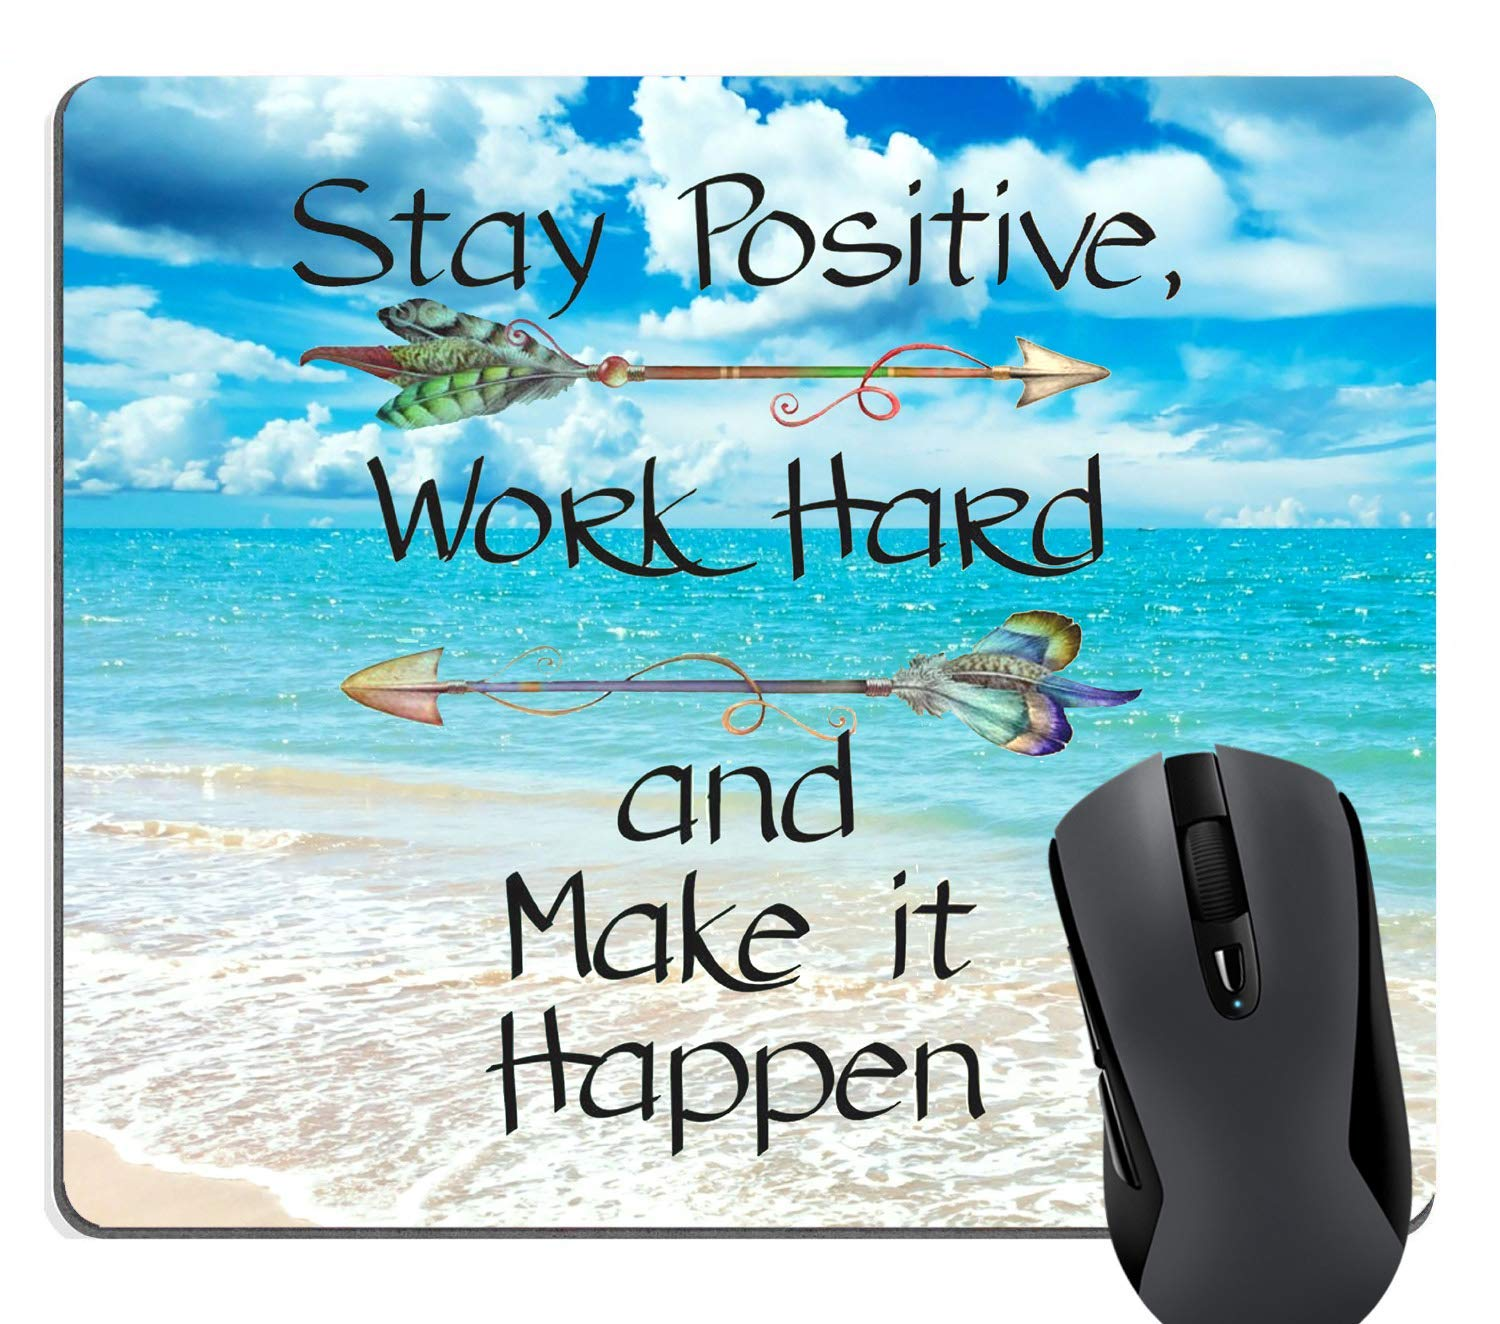 Amazon.com : Stay Positive Work Hard Make It Happen Arrow ...